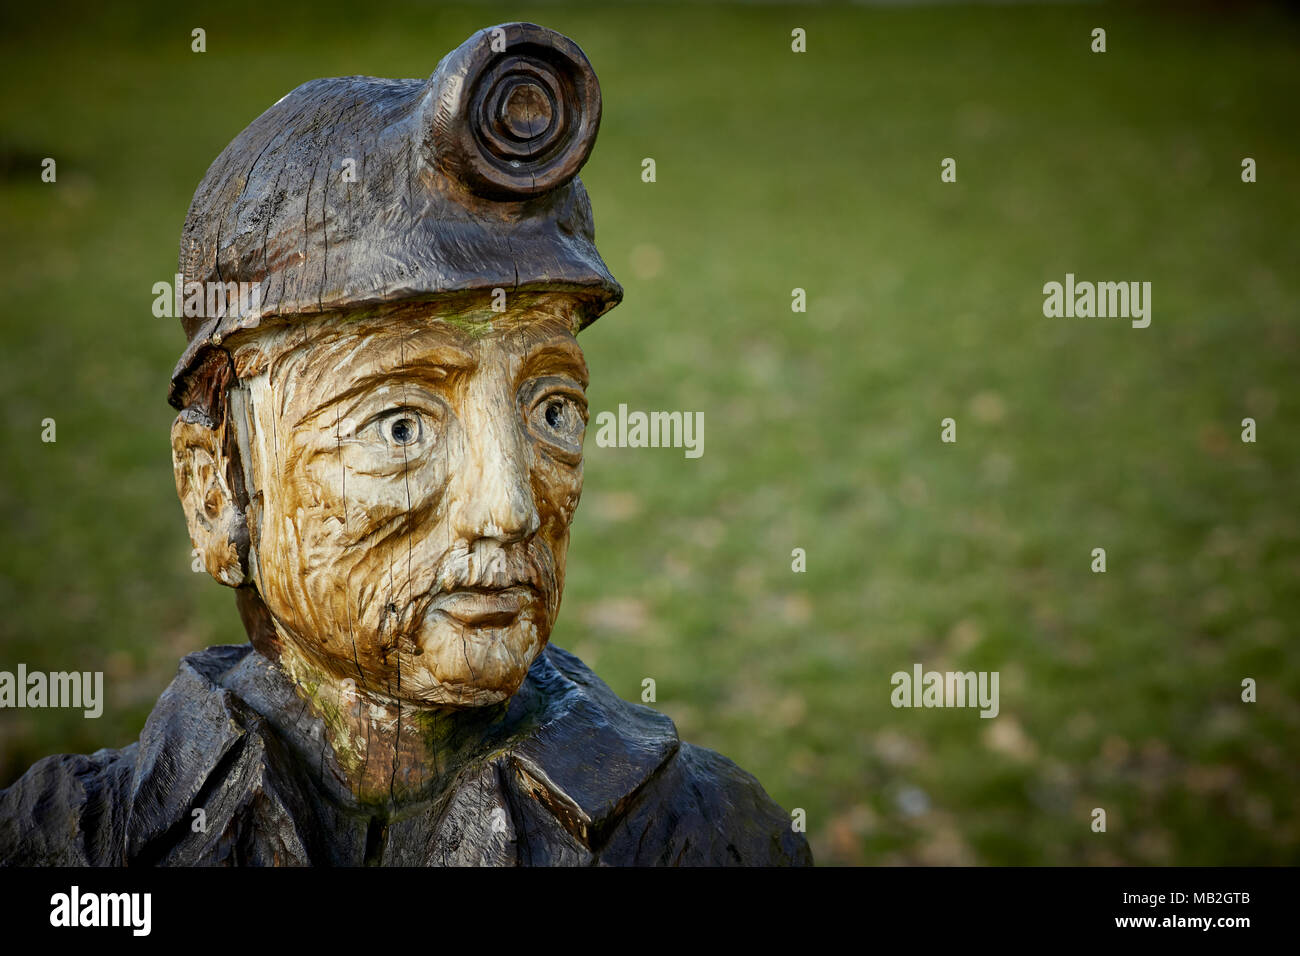 Mining history Mosley Common Village near Leigh, chainsaw sculptor Andy Burgess Miner Bust Sculpture from diseased tree the village green Greater Manc - Stock Image